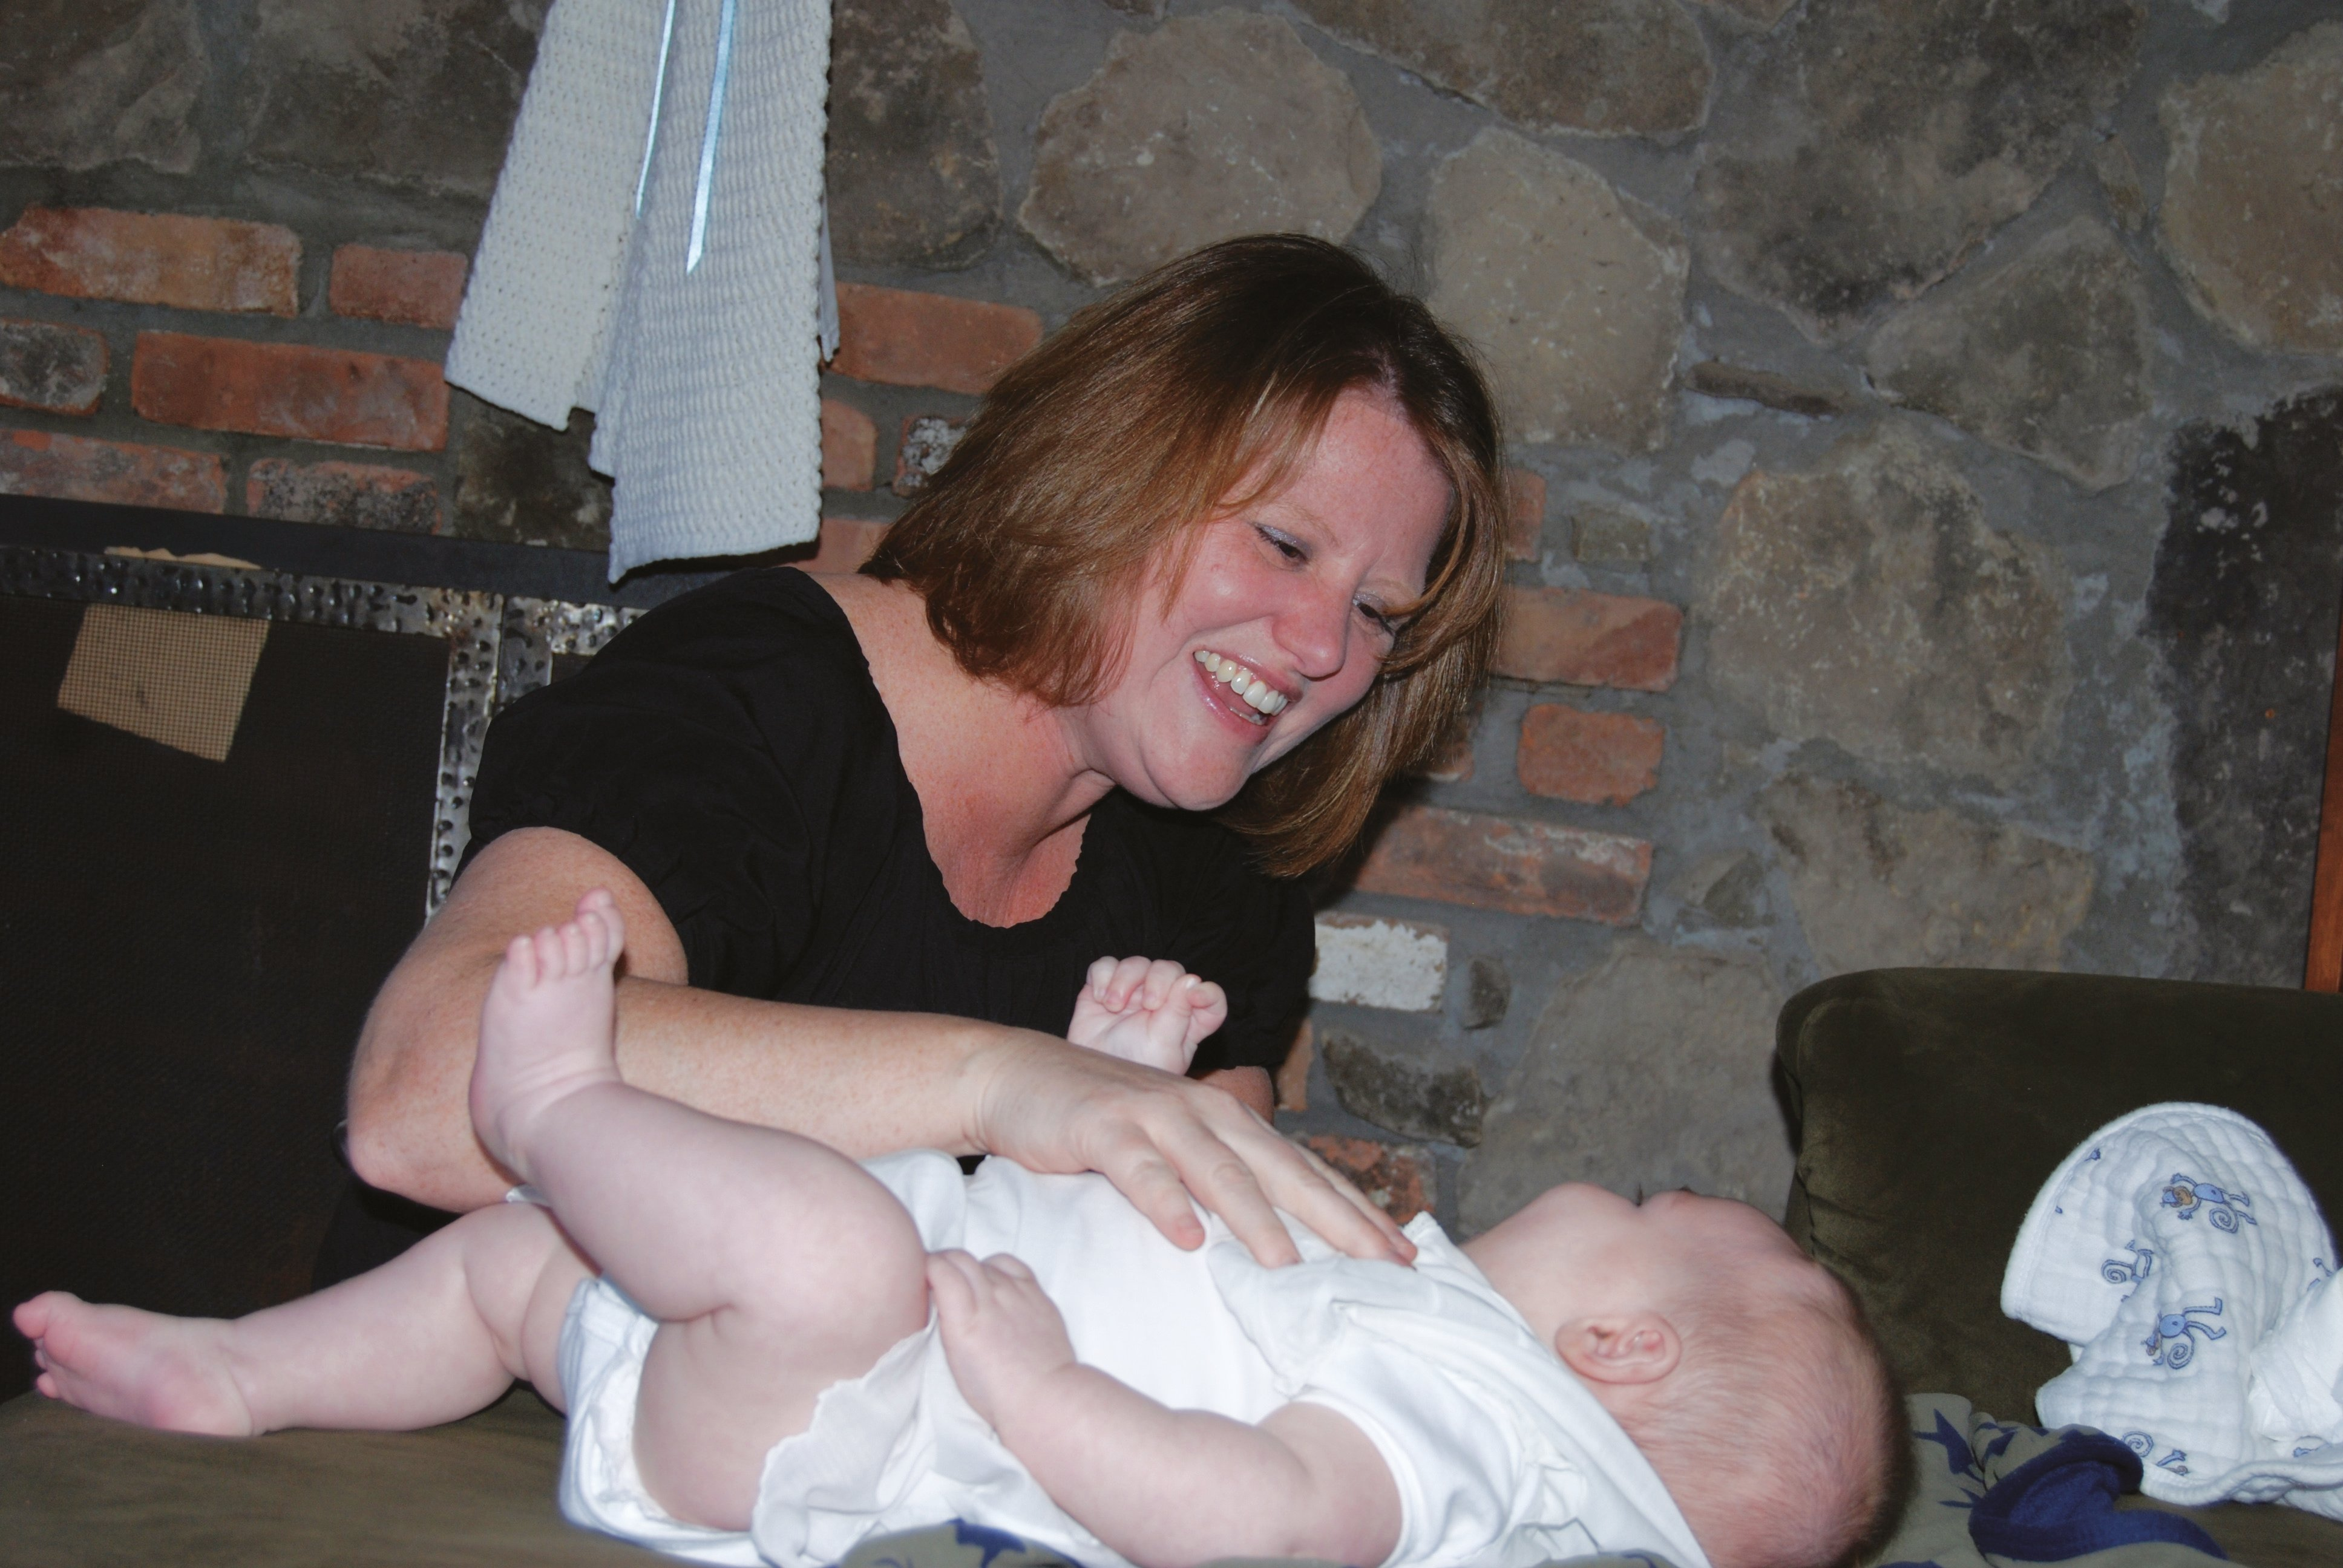 Patricia Reilly started Growing Up Babies, a newborn care consulting company in Rockland, NY